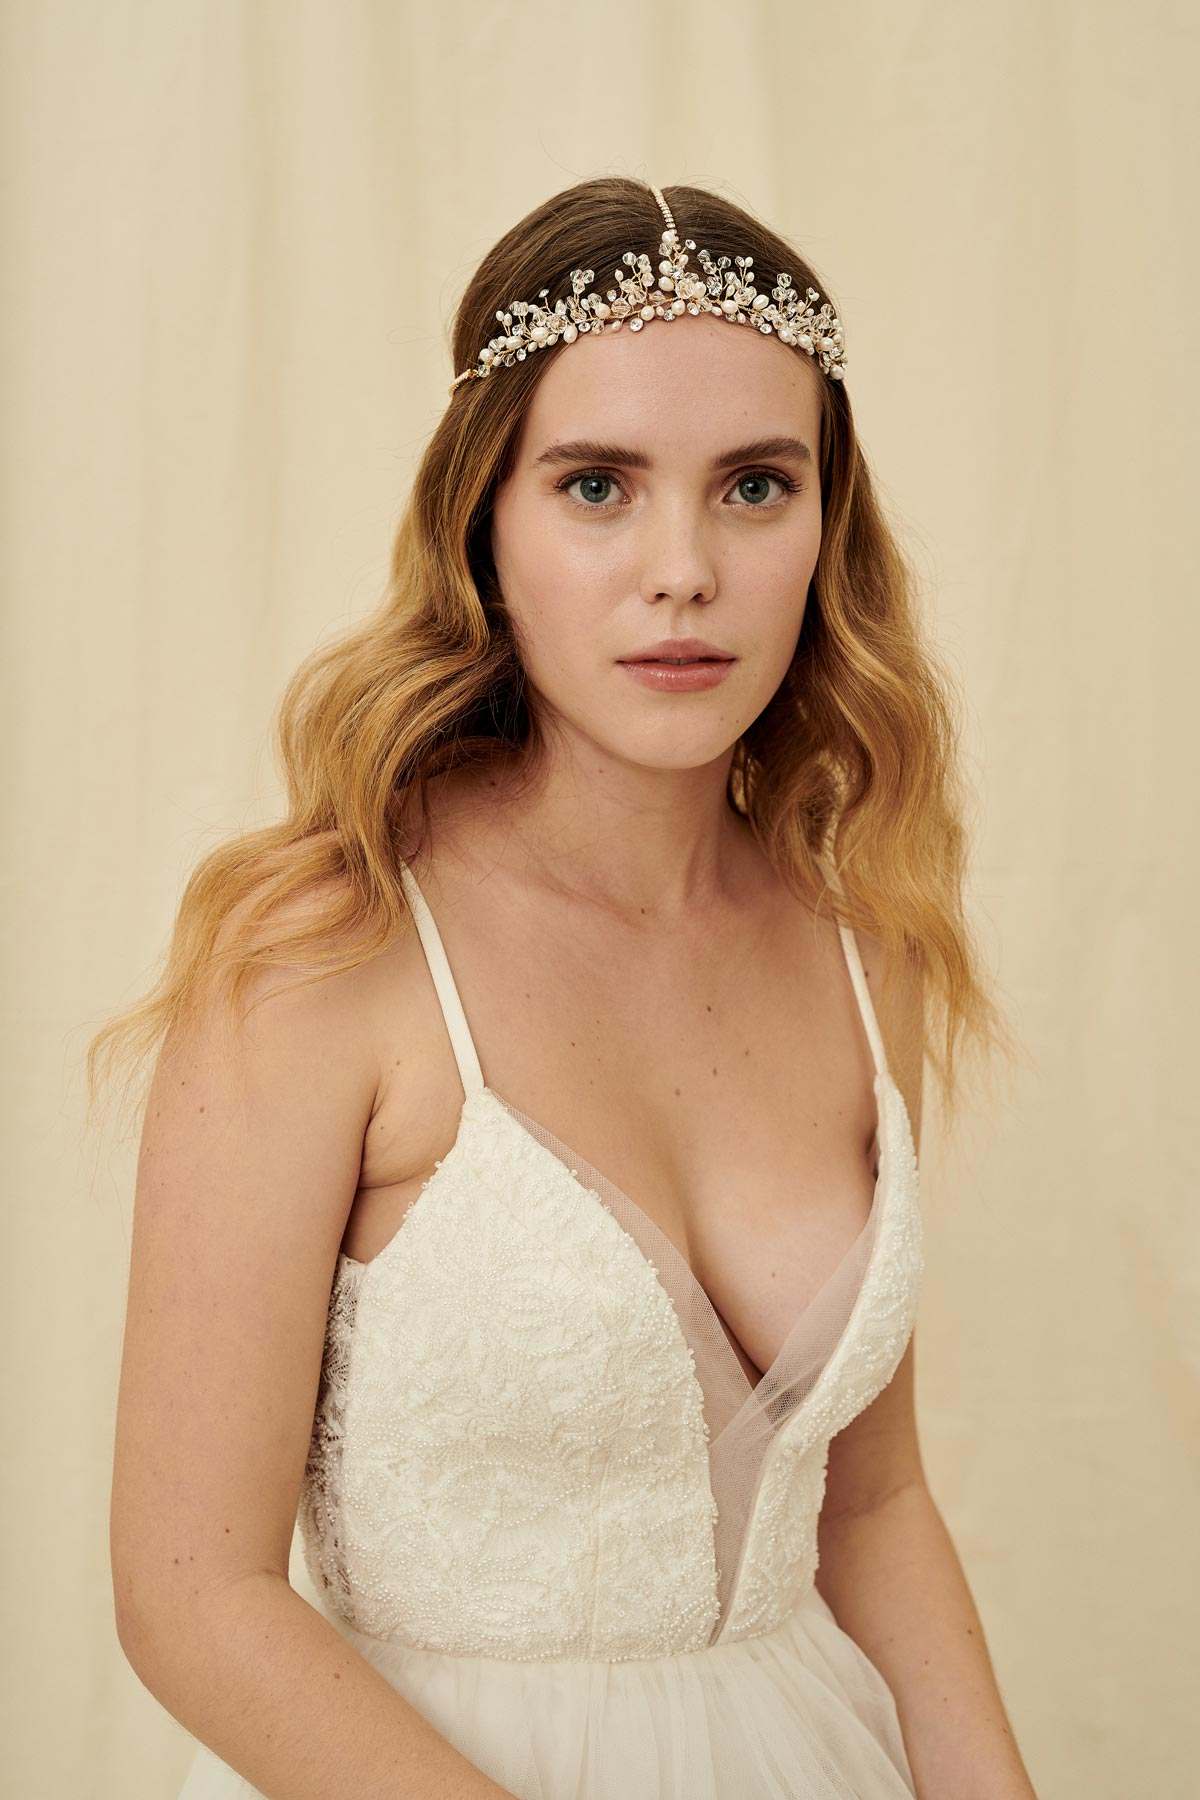 A vintage-inspired three strand bridal headpiece made with pearls and Swarovski crystals